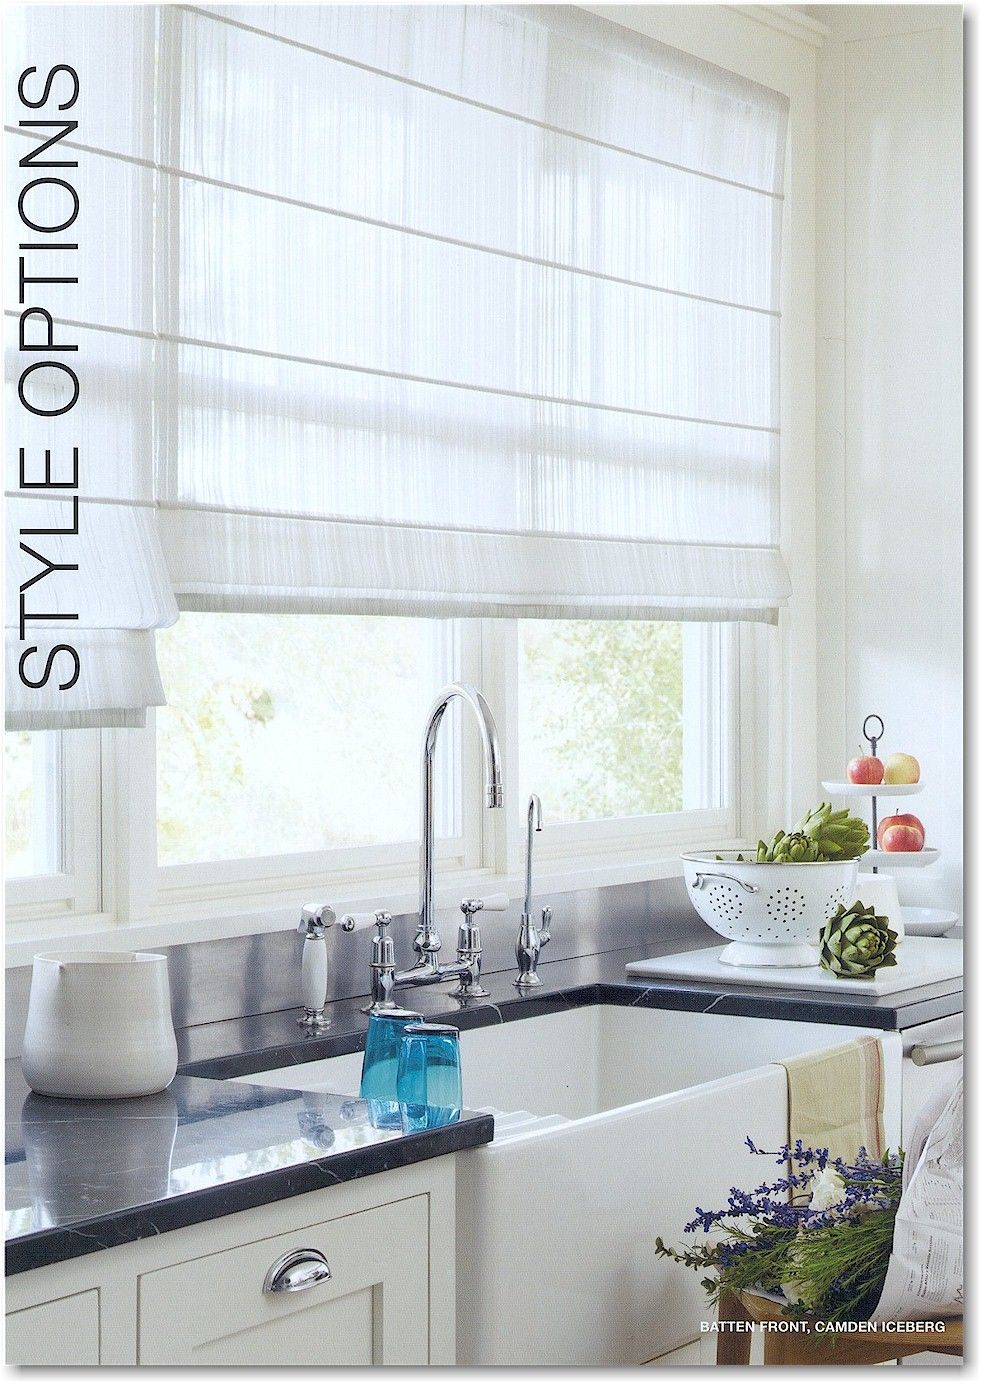 Hunter douglas design studio roman shades in sheer fabric for Fabric shades for kitchen windows